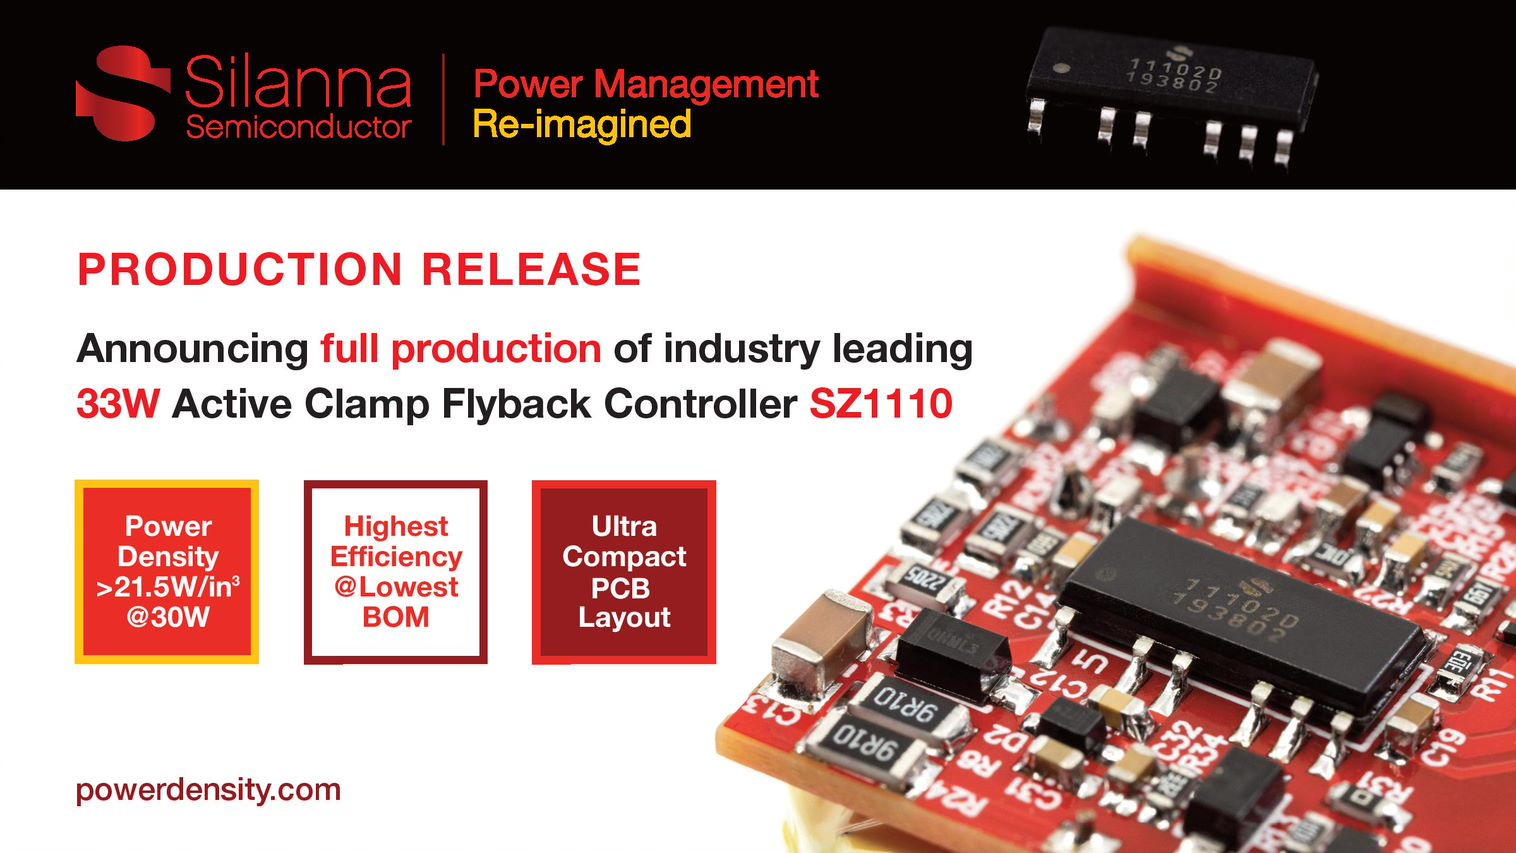 Expanded Portfolio of Active Clamp Flyback Controllers